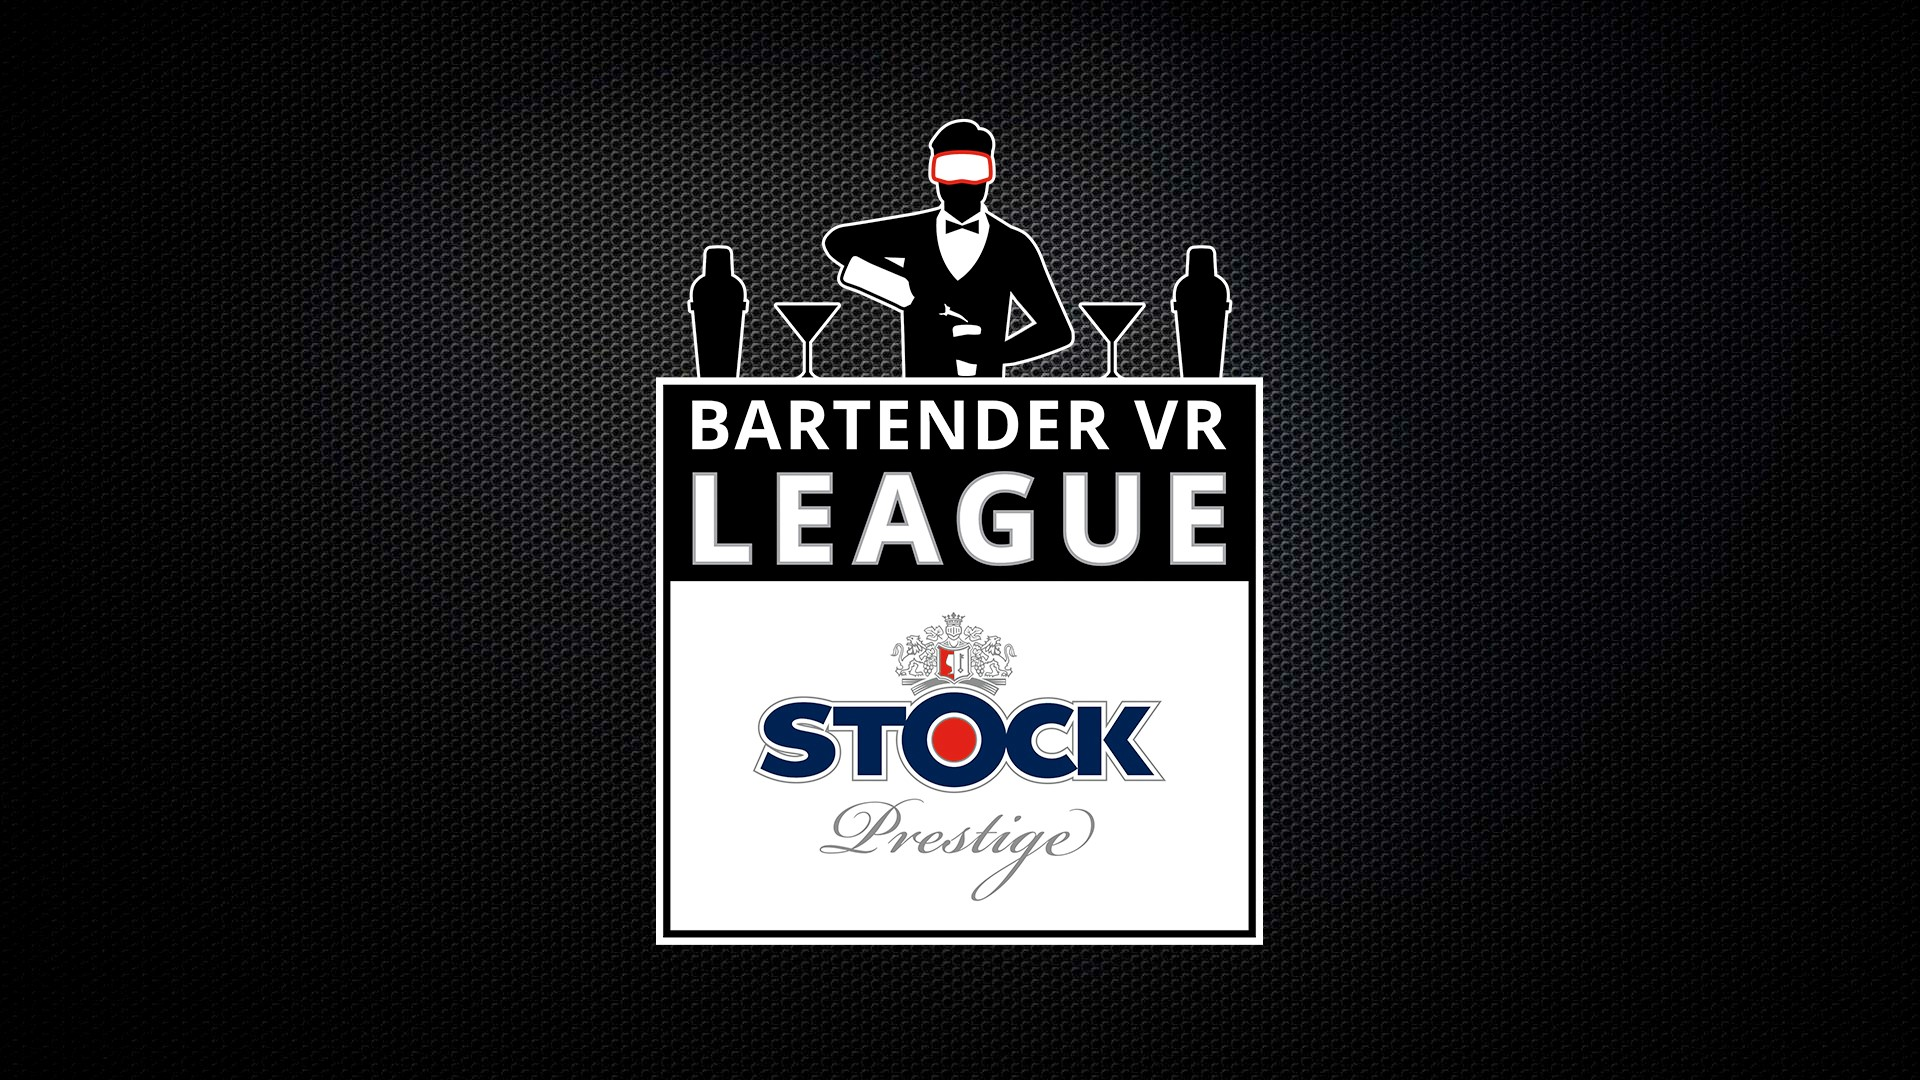 Stock Prestige Bartender VR League